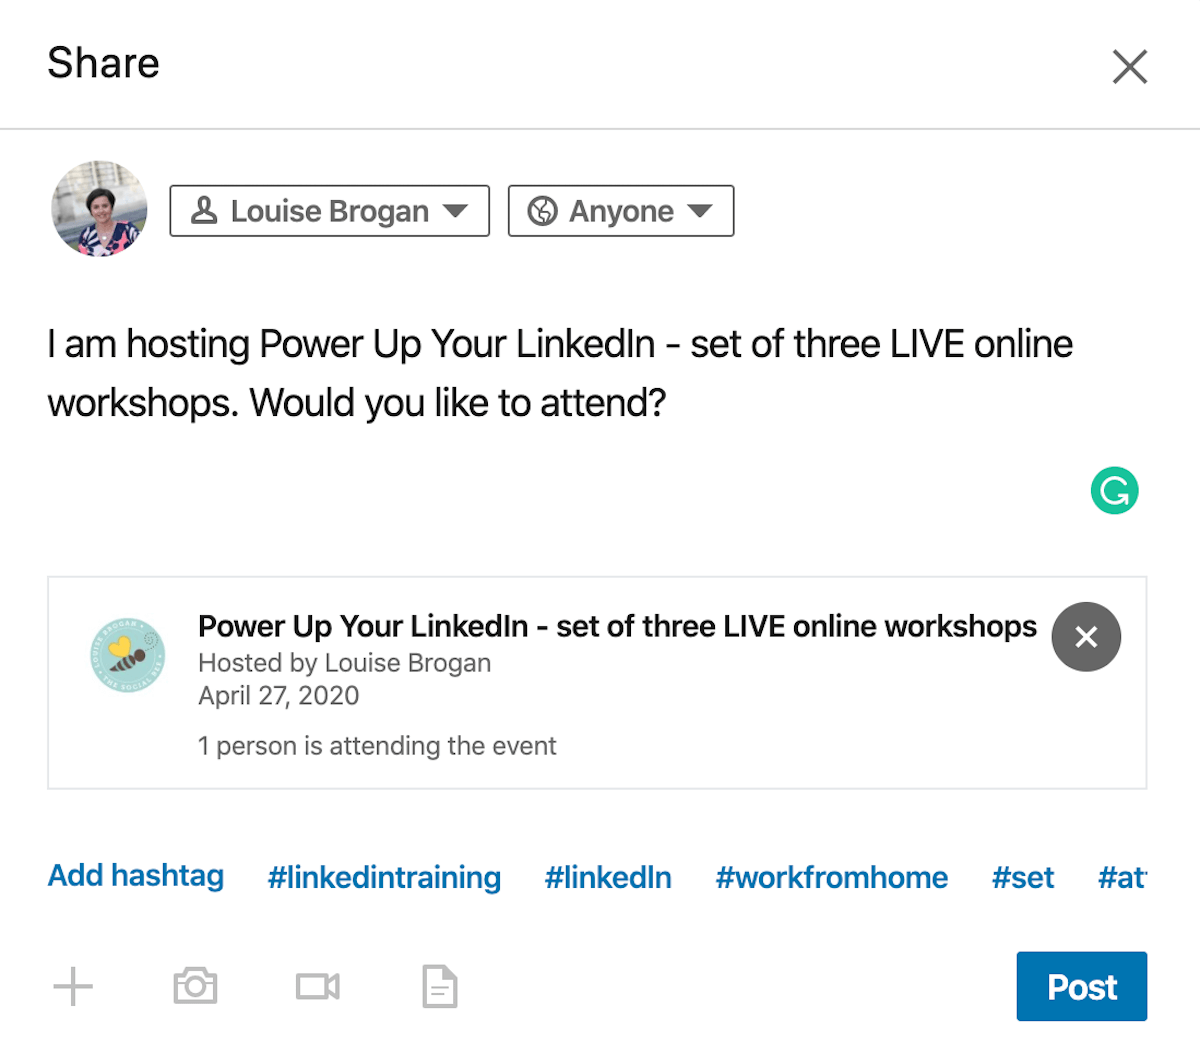 Share dialog box for sharing LinkedIn event with network